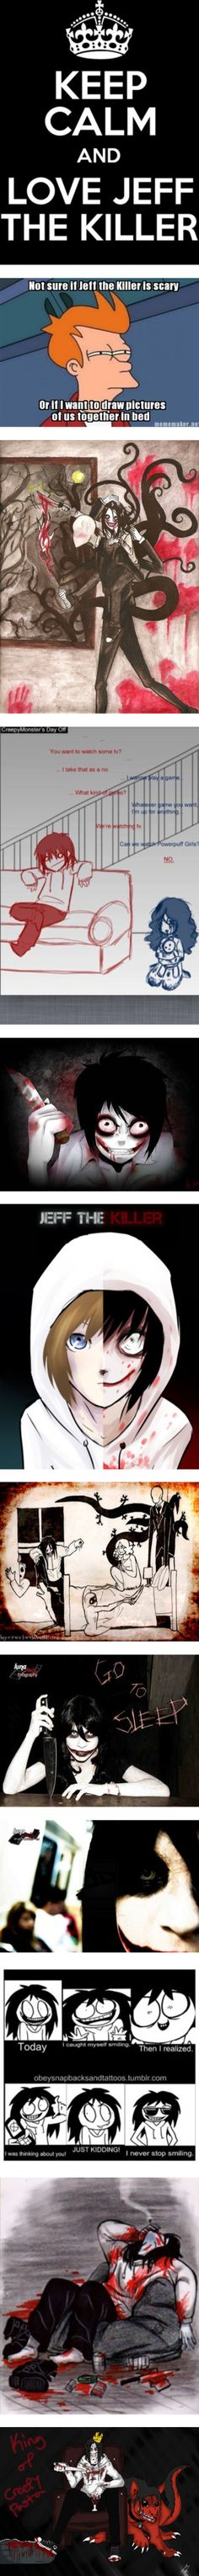 """Jeff The Killer Says............ GO TO SLEEP!"" by fallinangle ❤ liked on Polyvore"